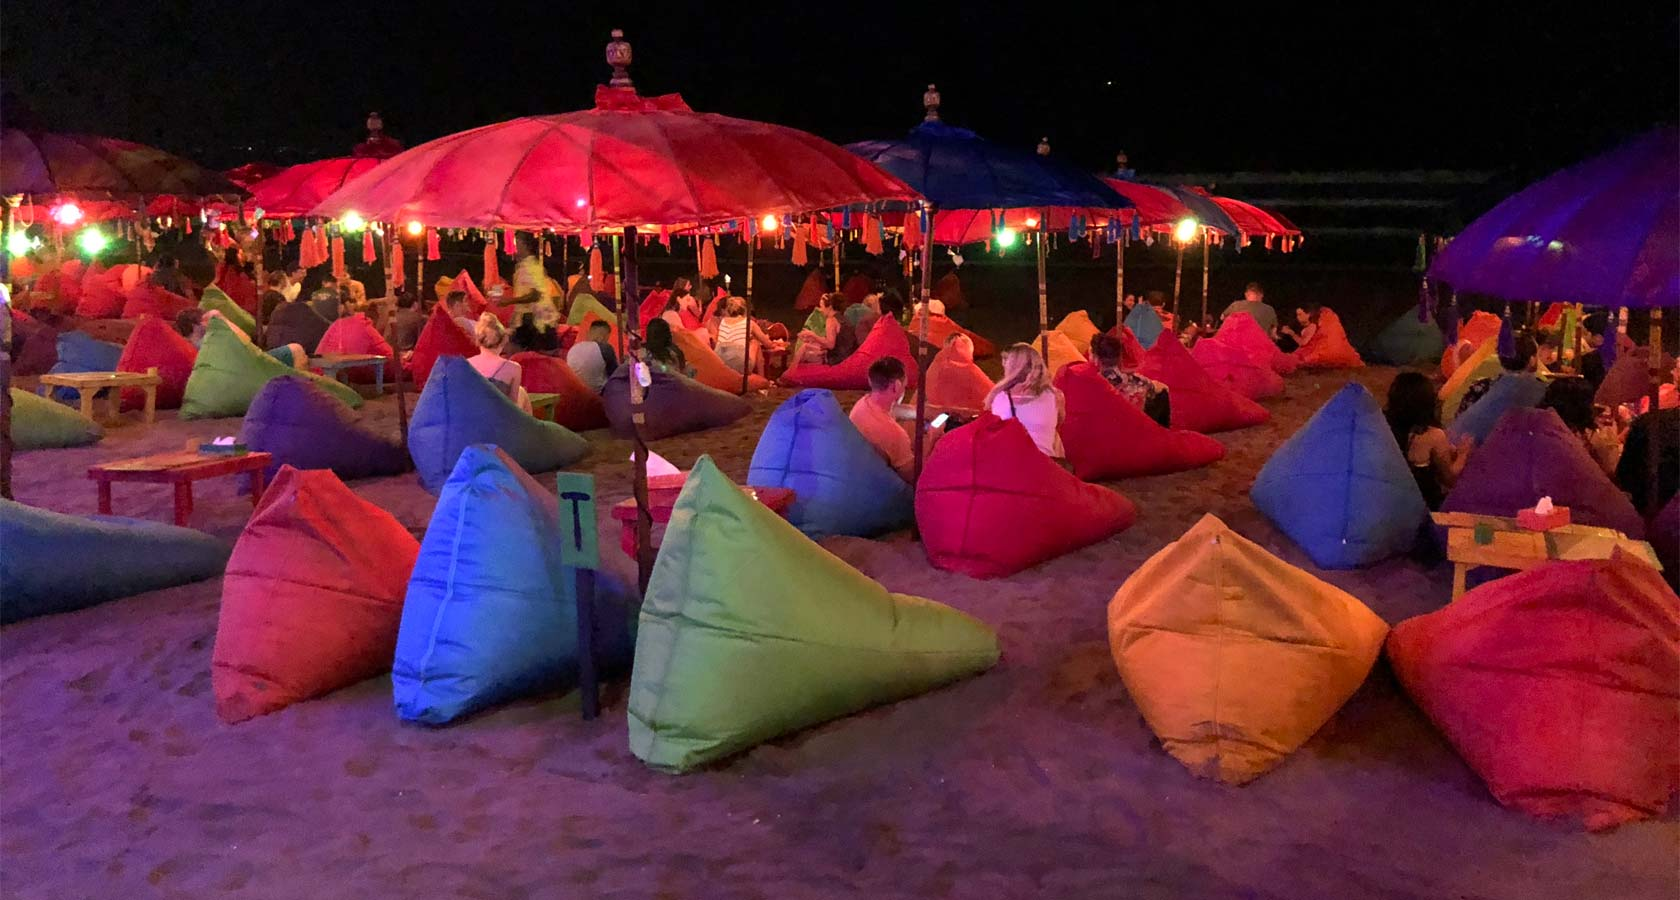 DOUBLE SIX BEACH bean bags on sand